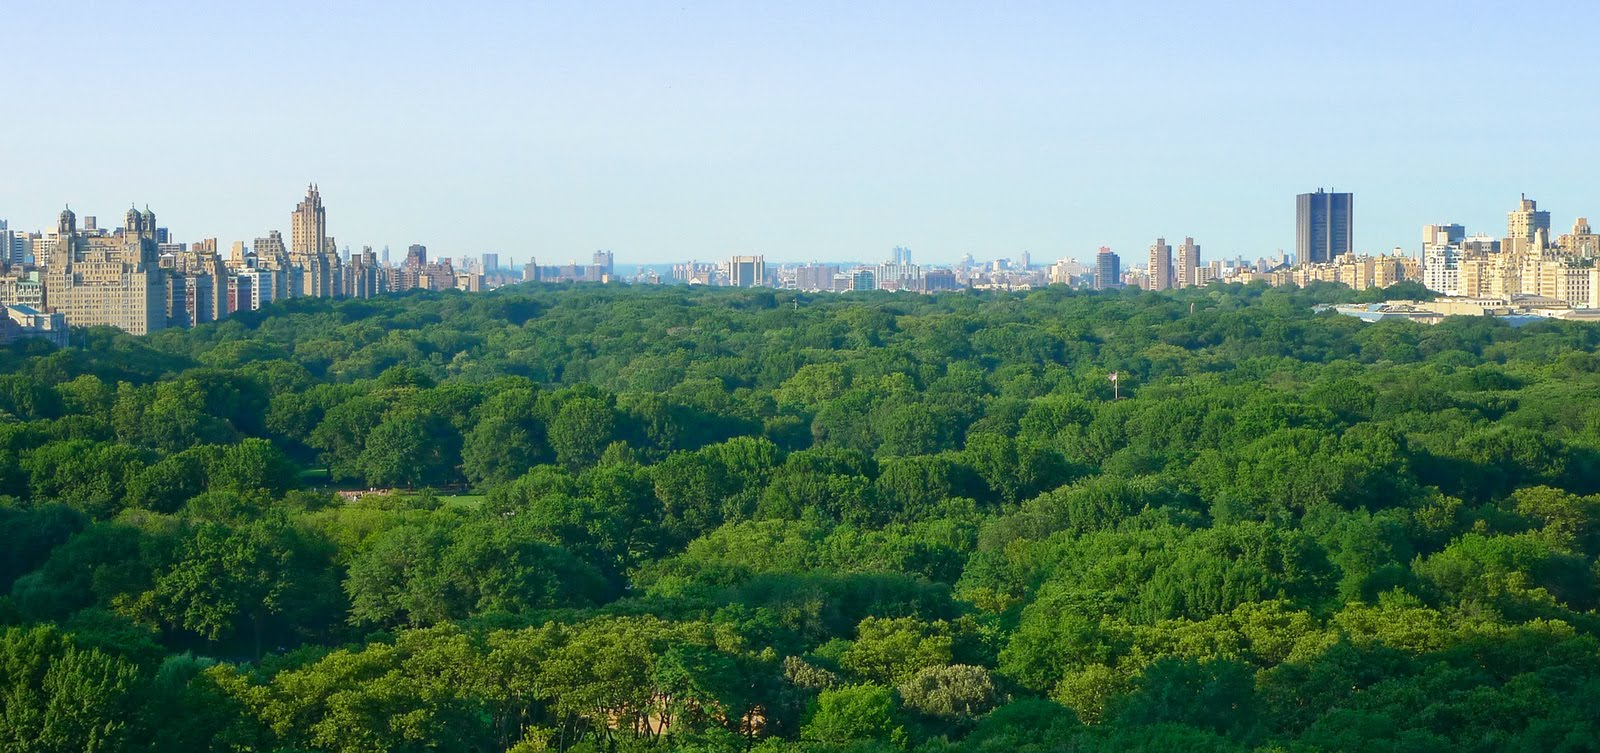 Central park, taken by an old classmate Sean Du